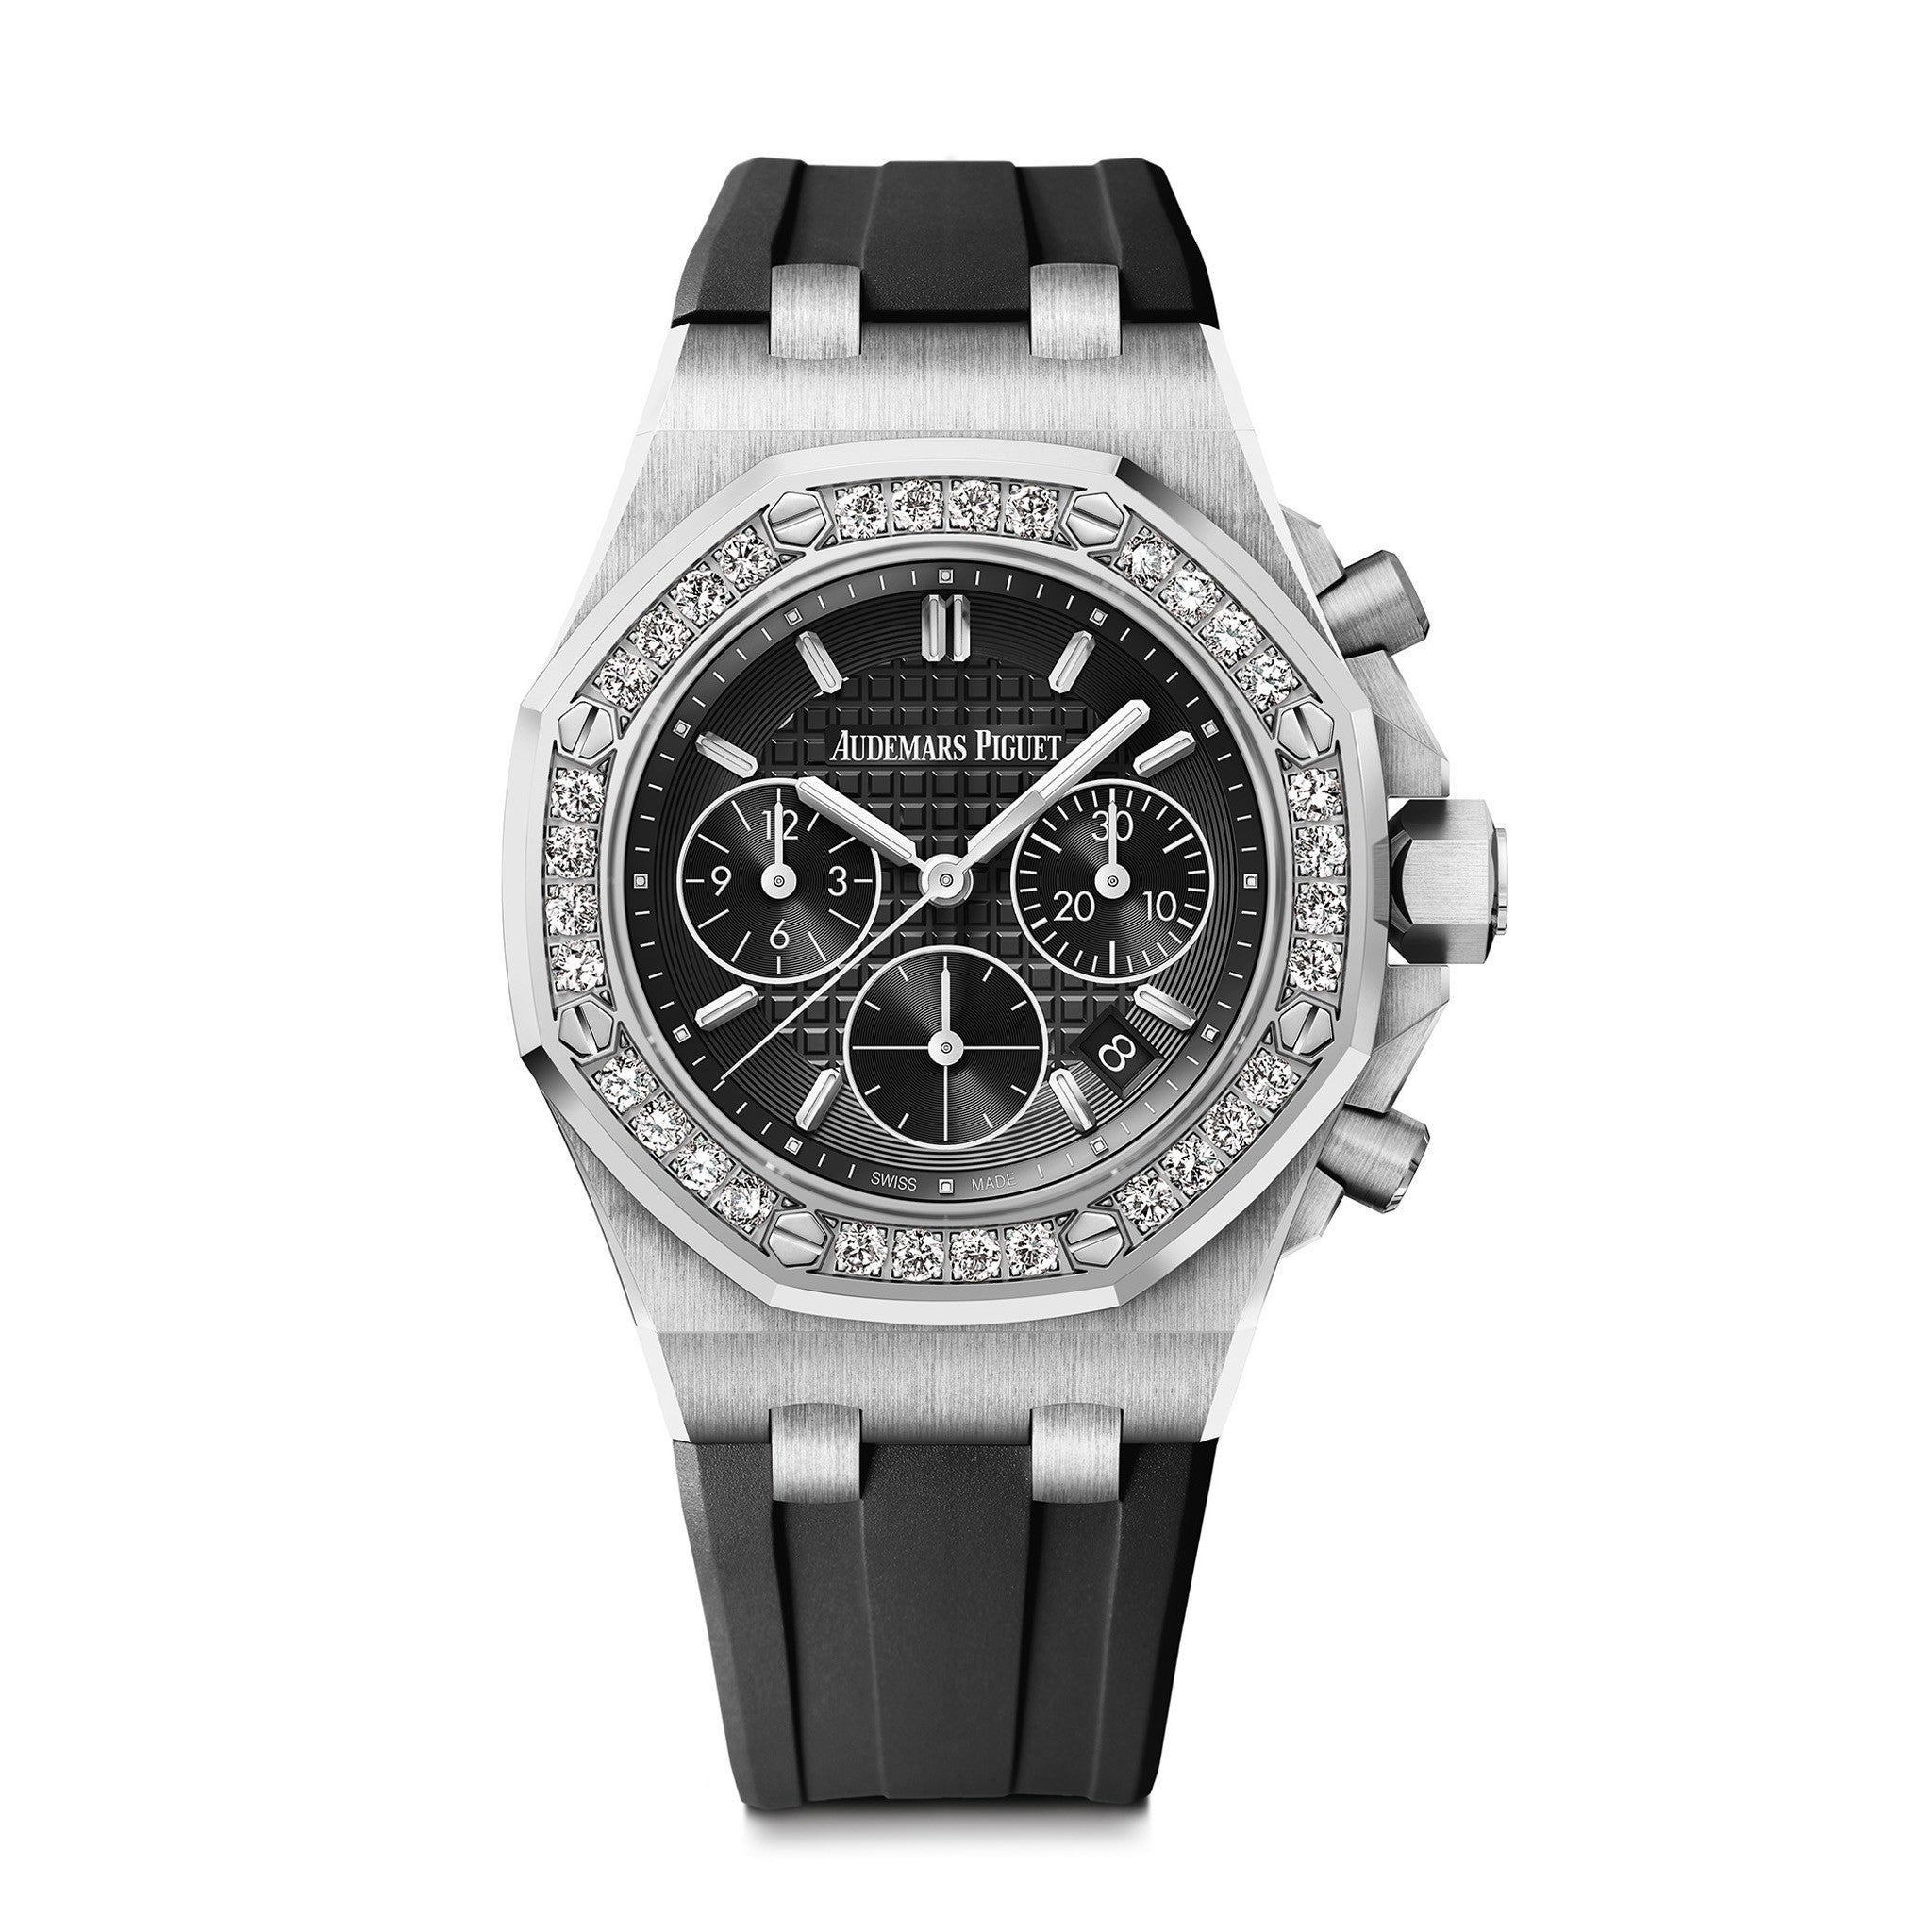 Royal Oak Offshore Ladies Chronograph 26231ST.ZZ.D002CA.01 - Audemars Piguet